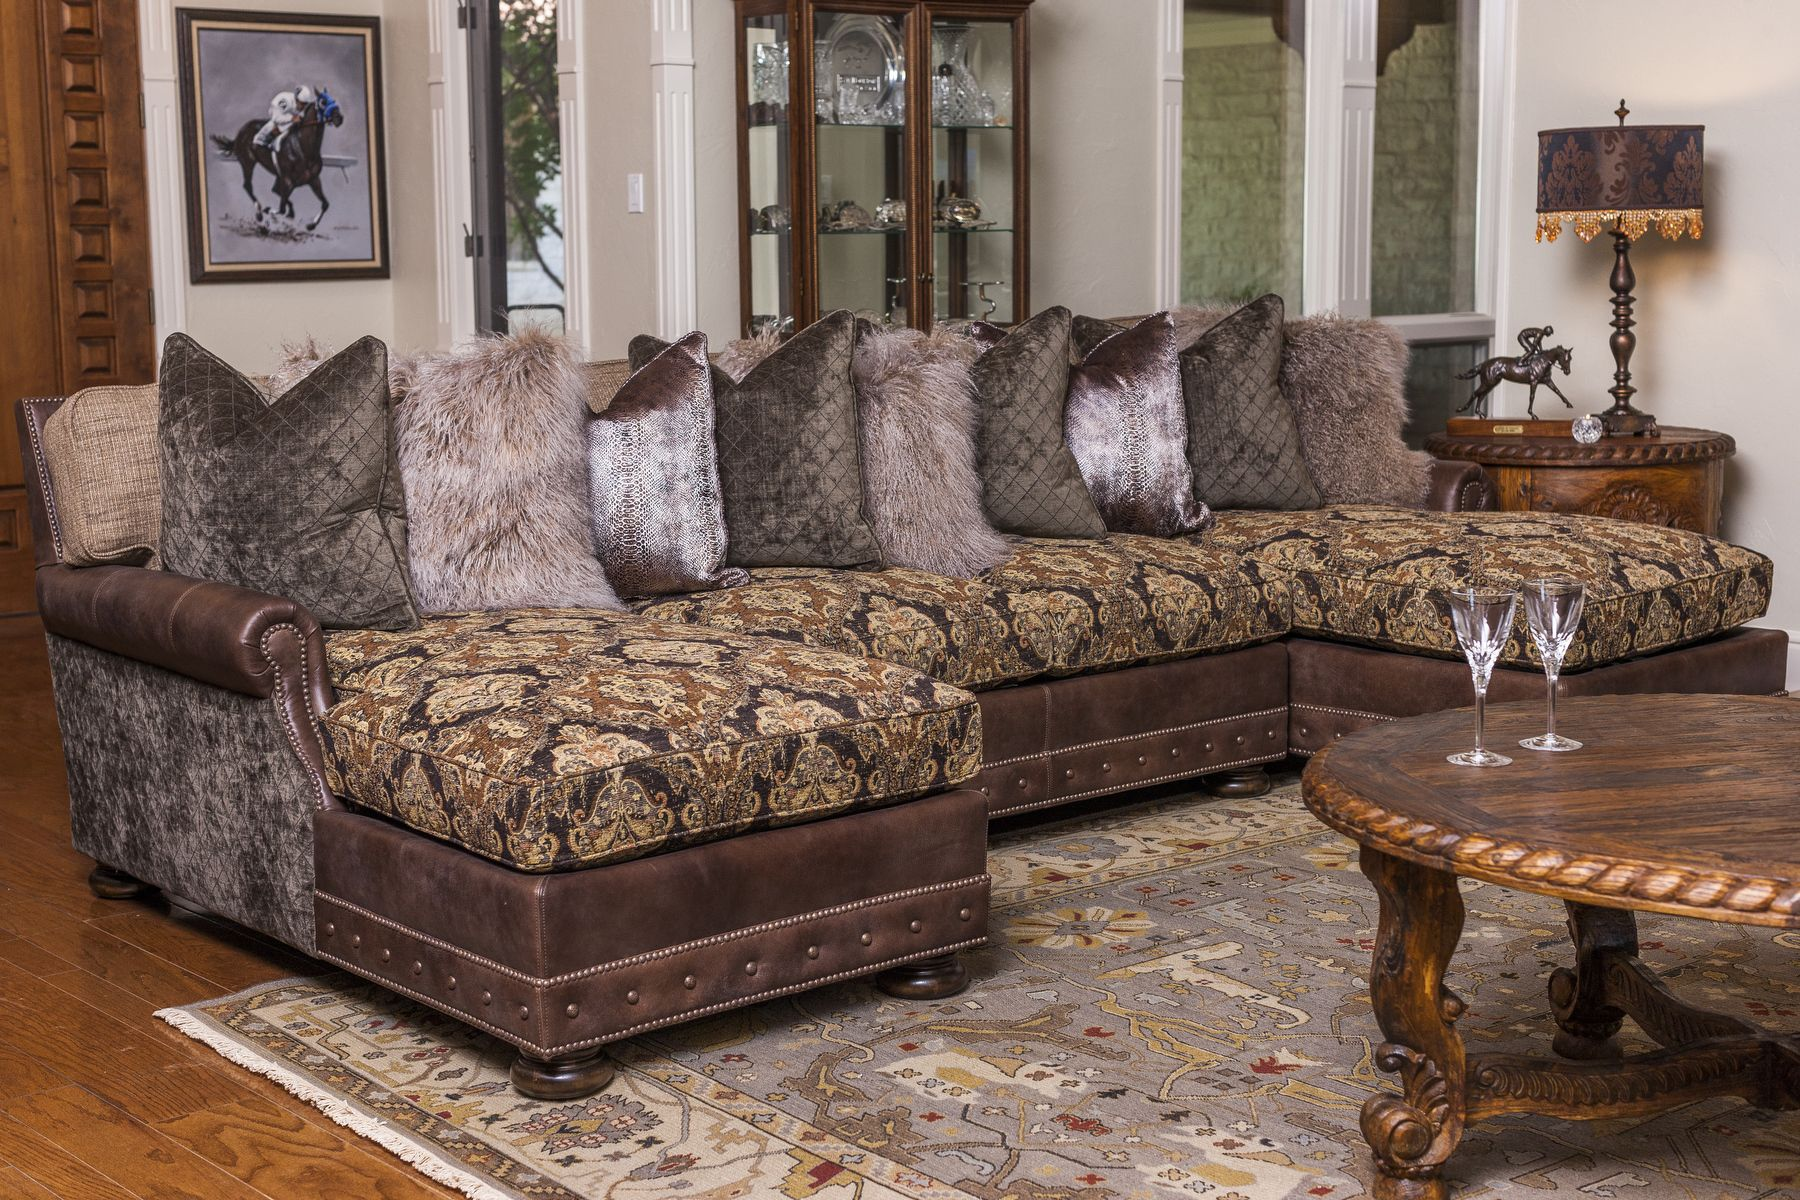 Image Result For Paisley Chenille Sofa Living Room Sets Furniture Furniture Simple Living Room Decor